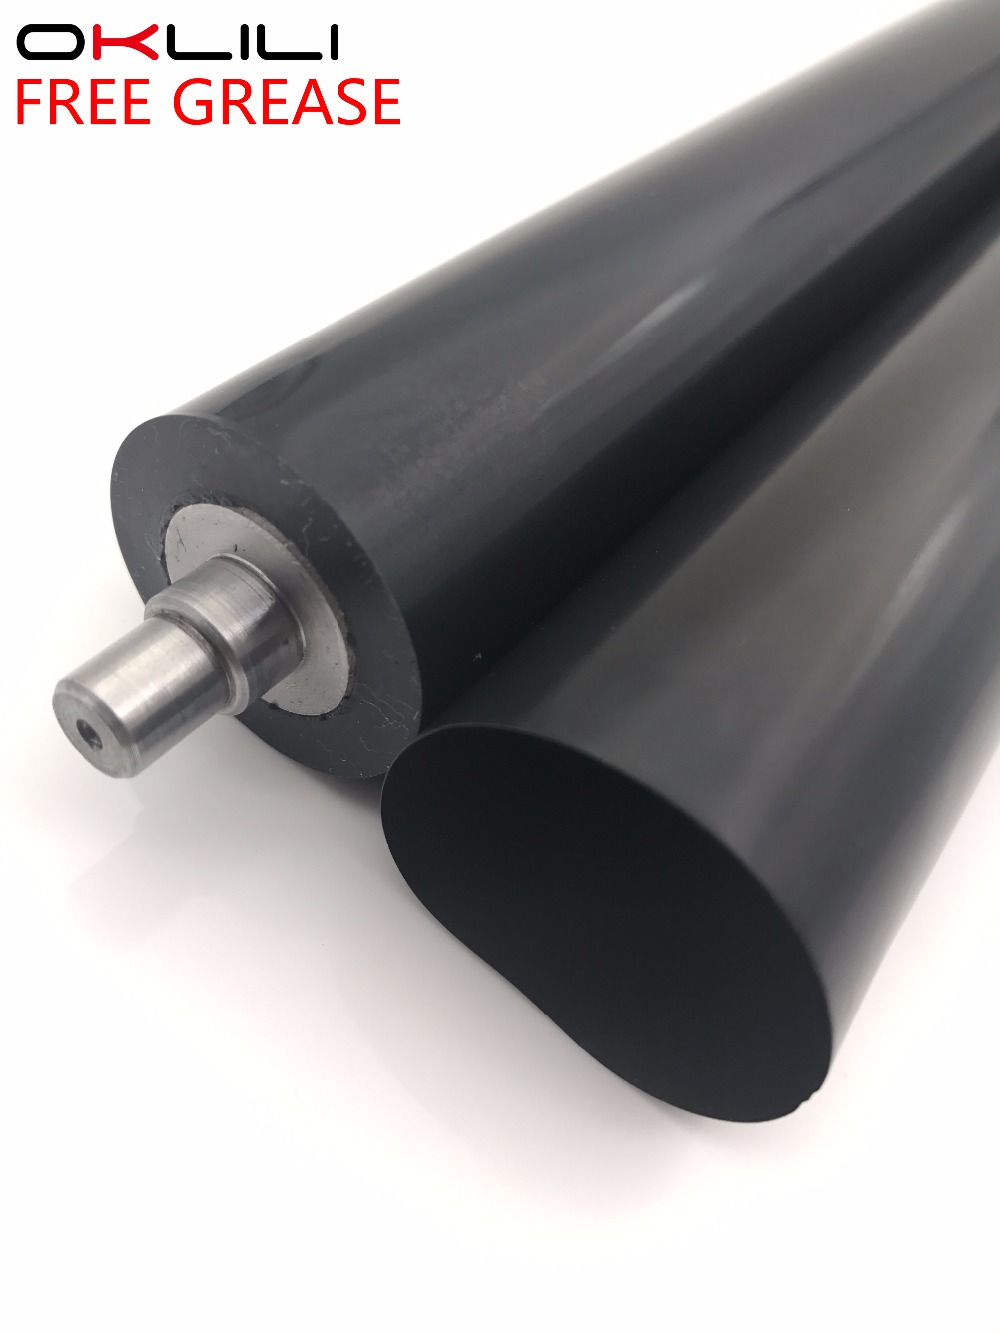 2SETX Fuser Film Sleeve Pressure Roller for Brother DCP L5500 L5600 L5650 HL L5000 L5100 L5200 L6200 L6250 L6300 L6400 5580 5585-in Fuser Film Sleeves from Computer & Office    1